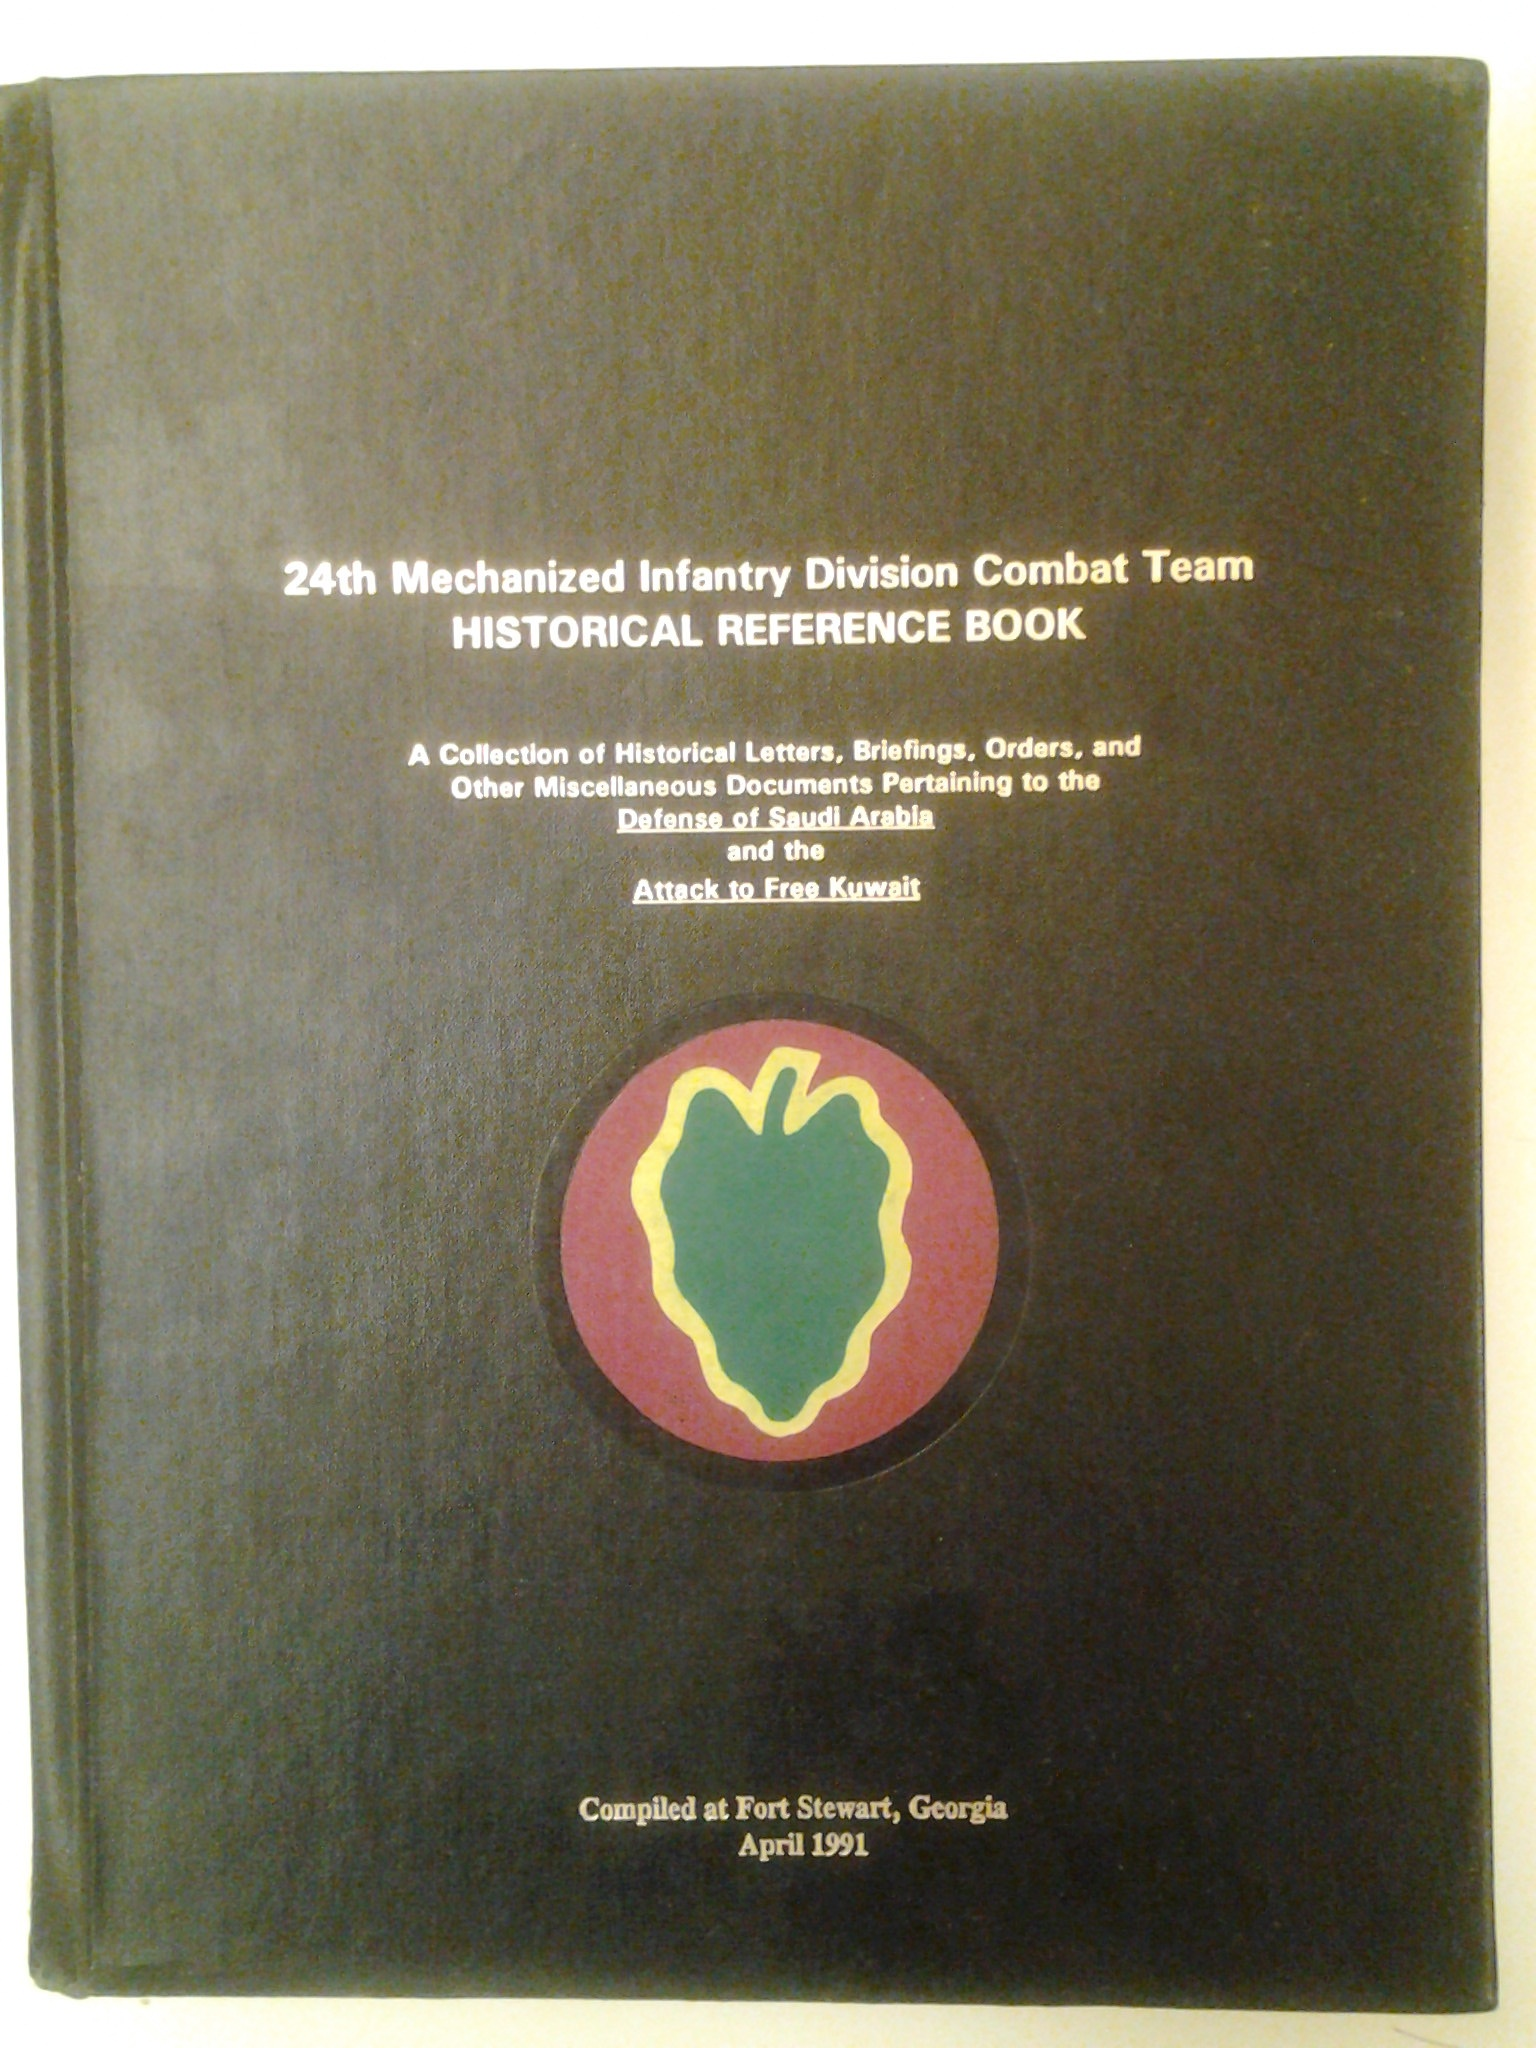 24th Mechanized Infantry Division Combat Team